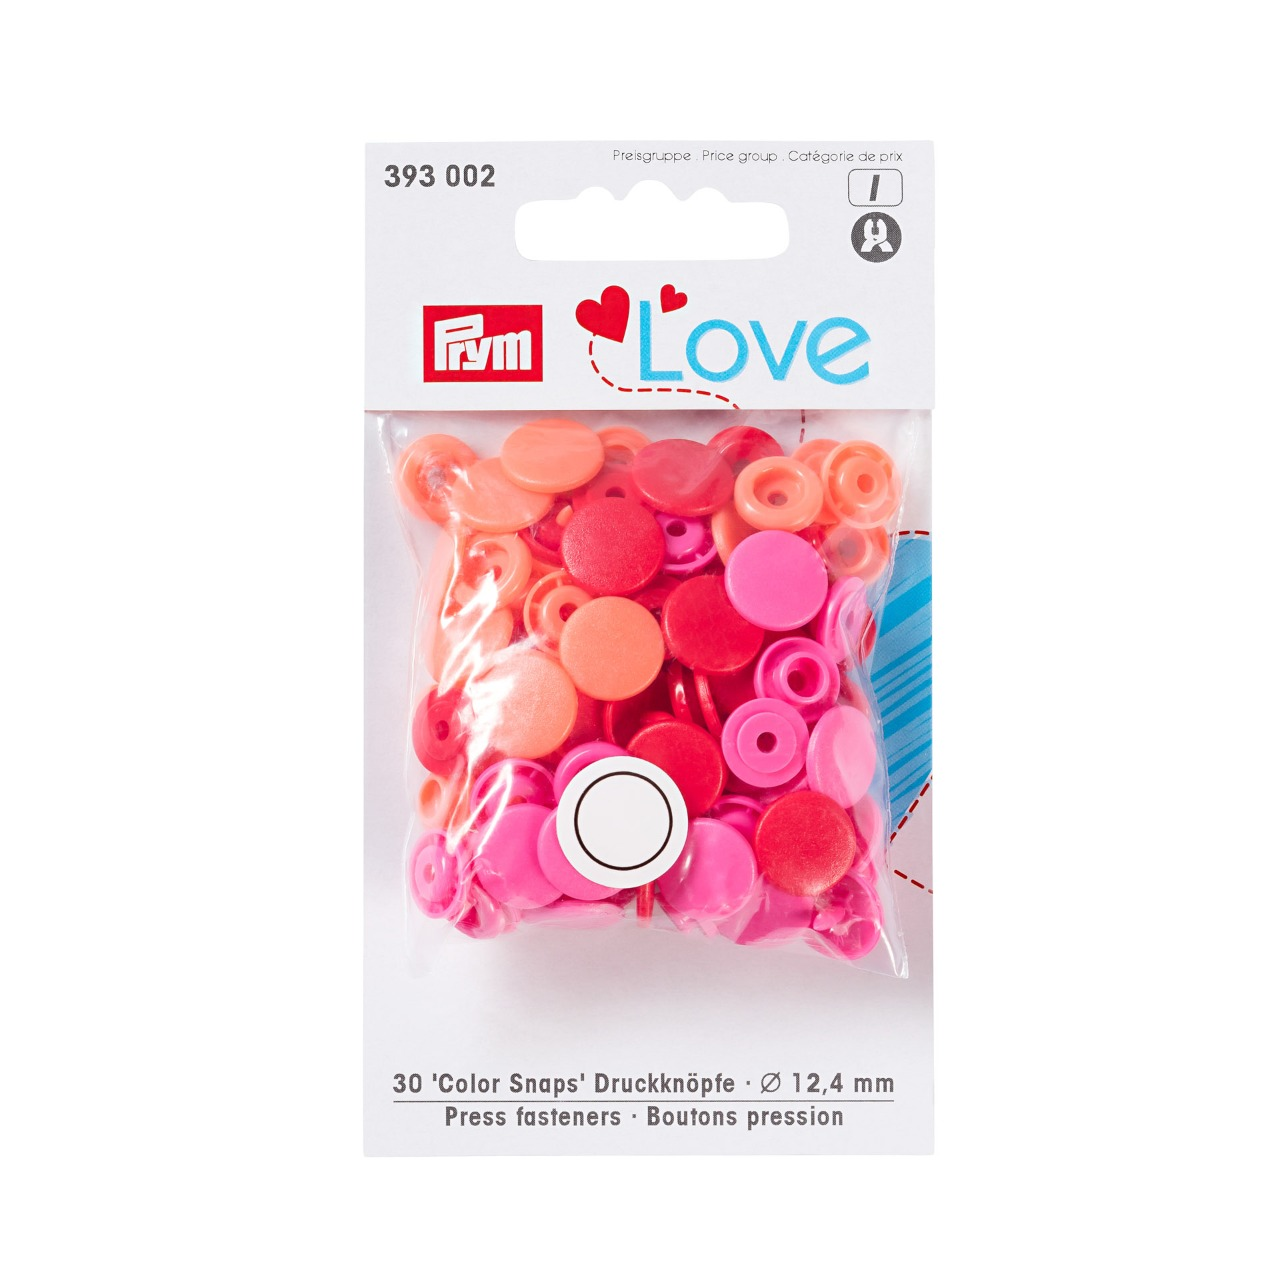 Sachet de 30 boutons pression 12 mm Prym love